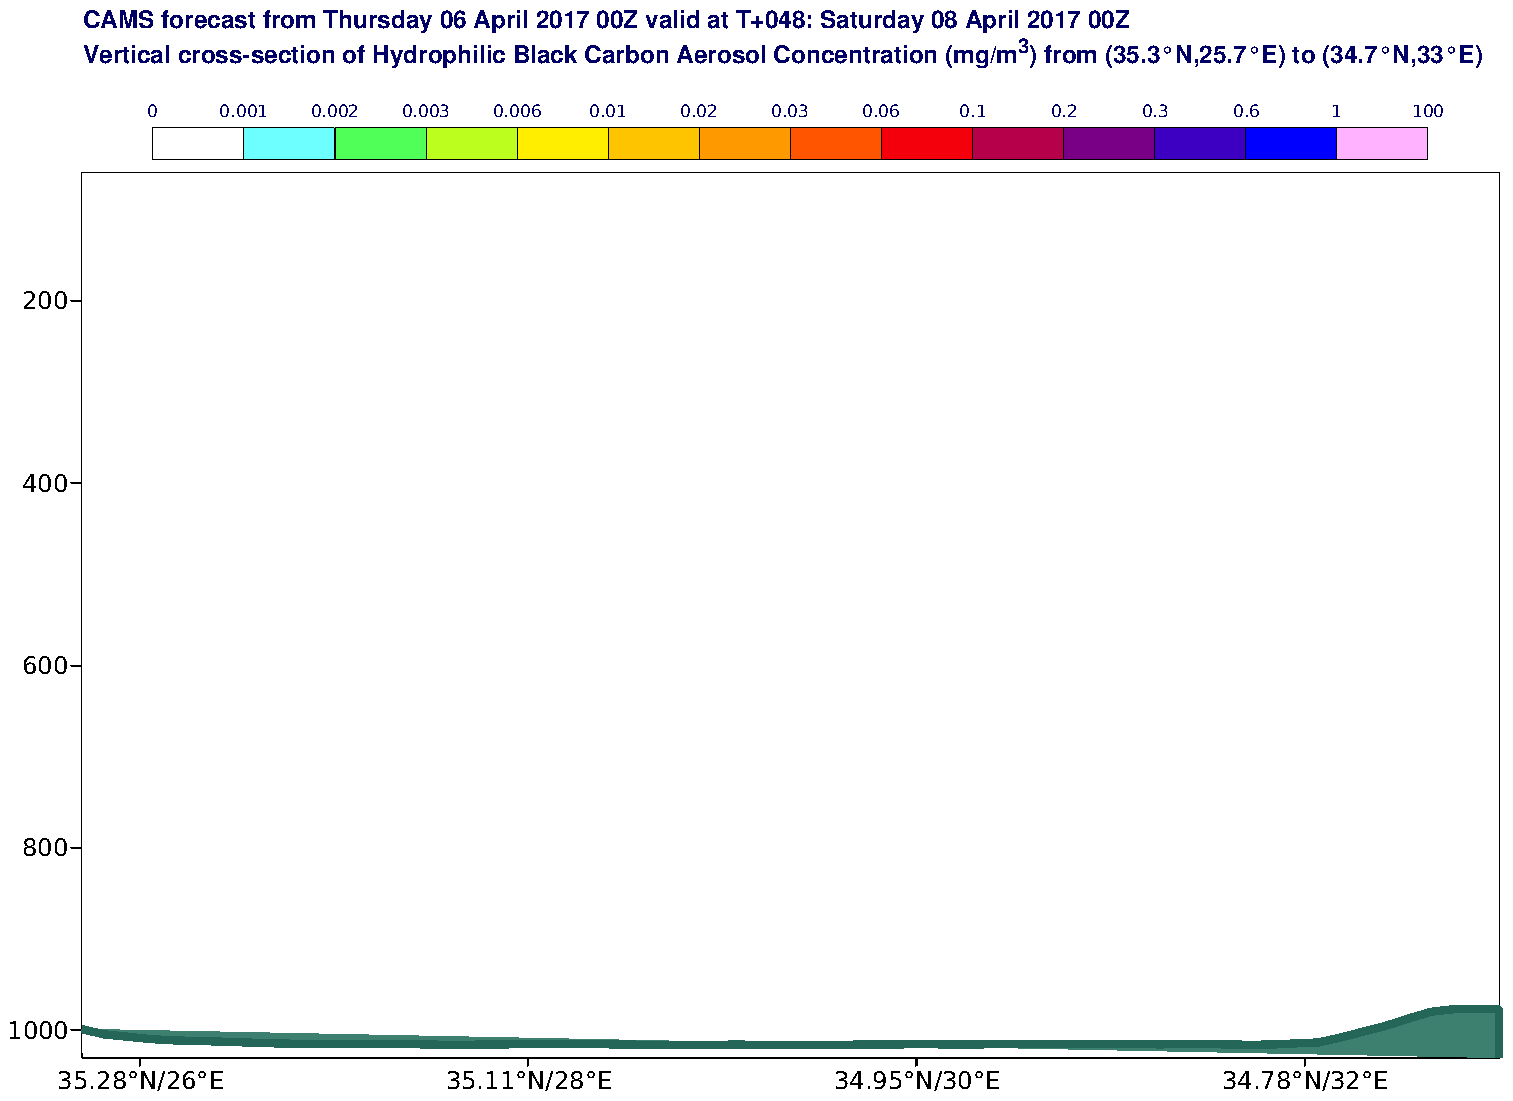 Vertical cross-section of Hydrophilic Black Carbon Aerosol Concentration (mg/m3) valid at T48 - 2017-04-08 00:00